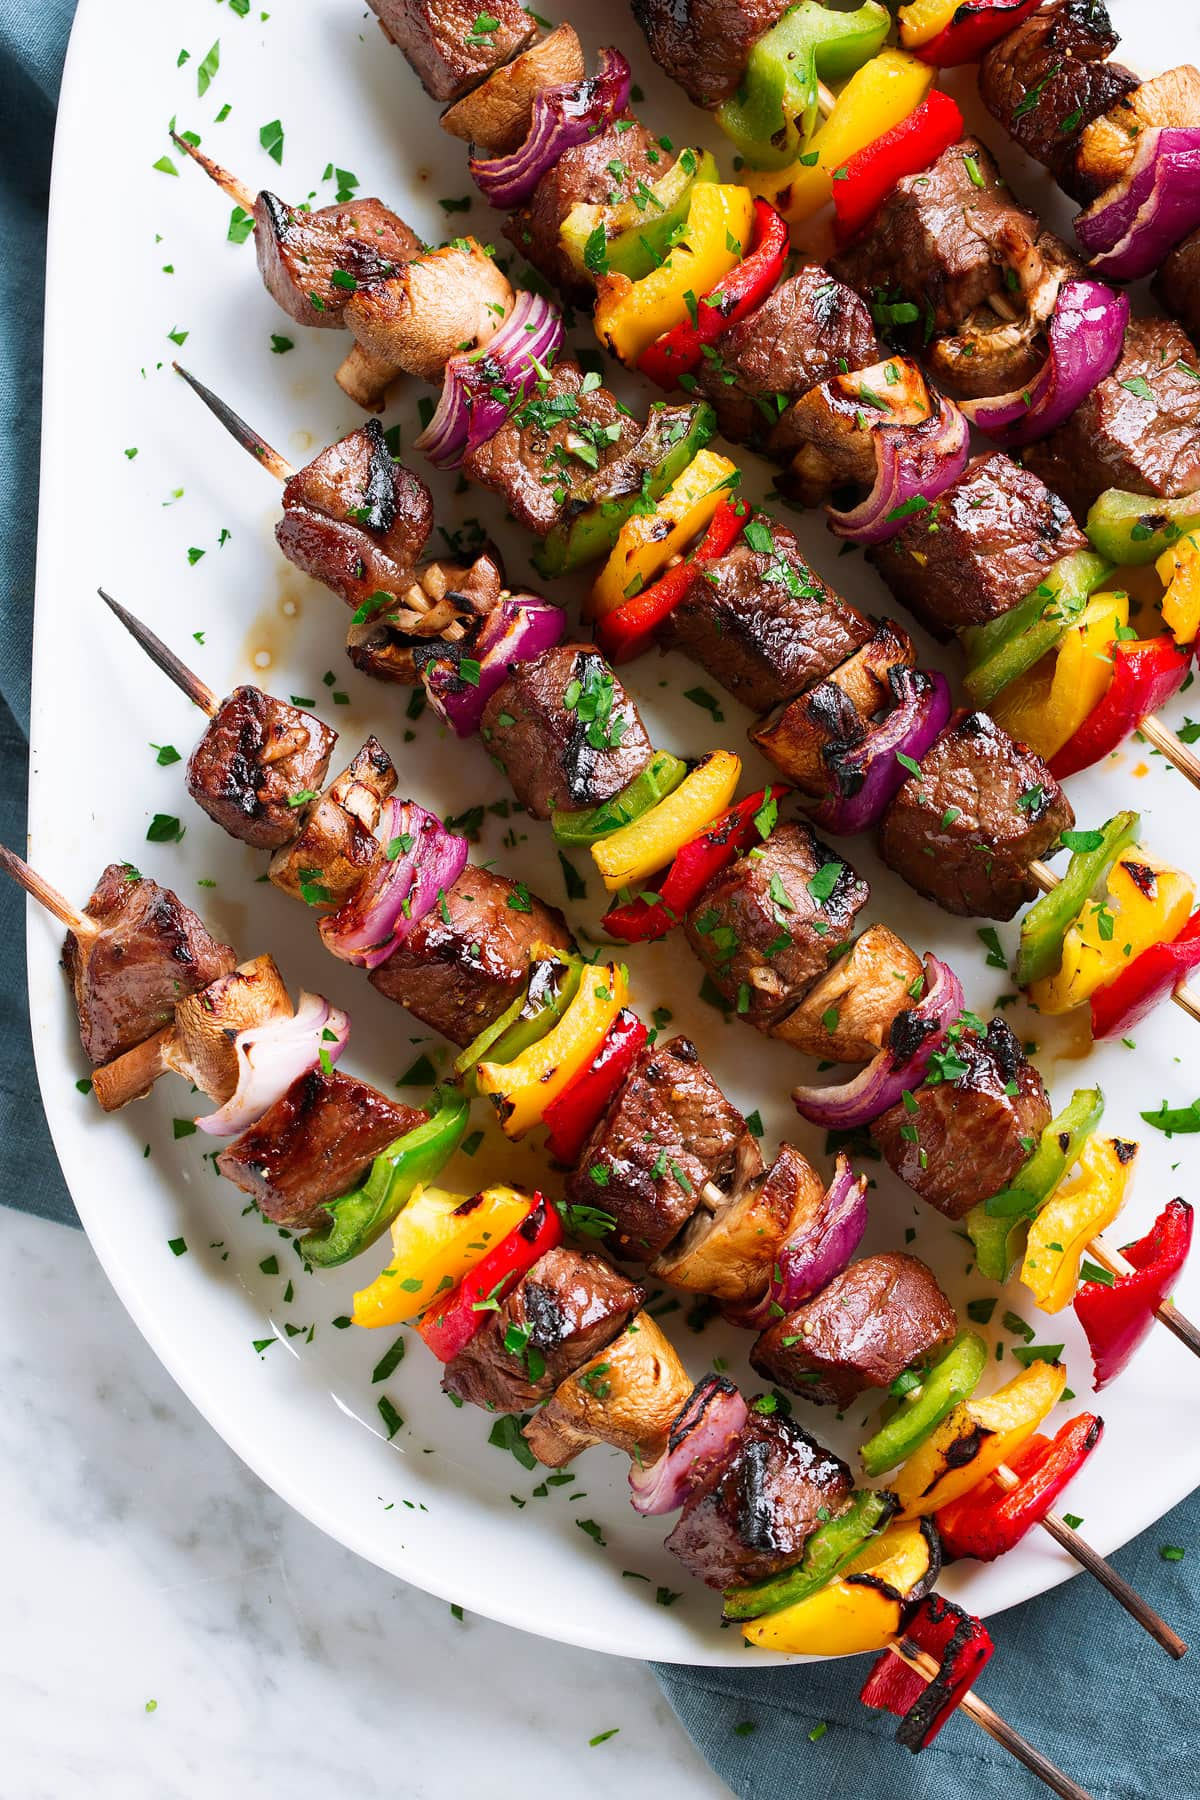 Steak Kebabs A Flavorful Steak Recipe Cooking Classy